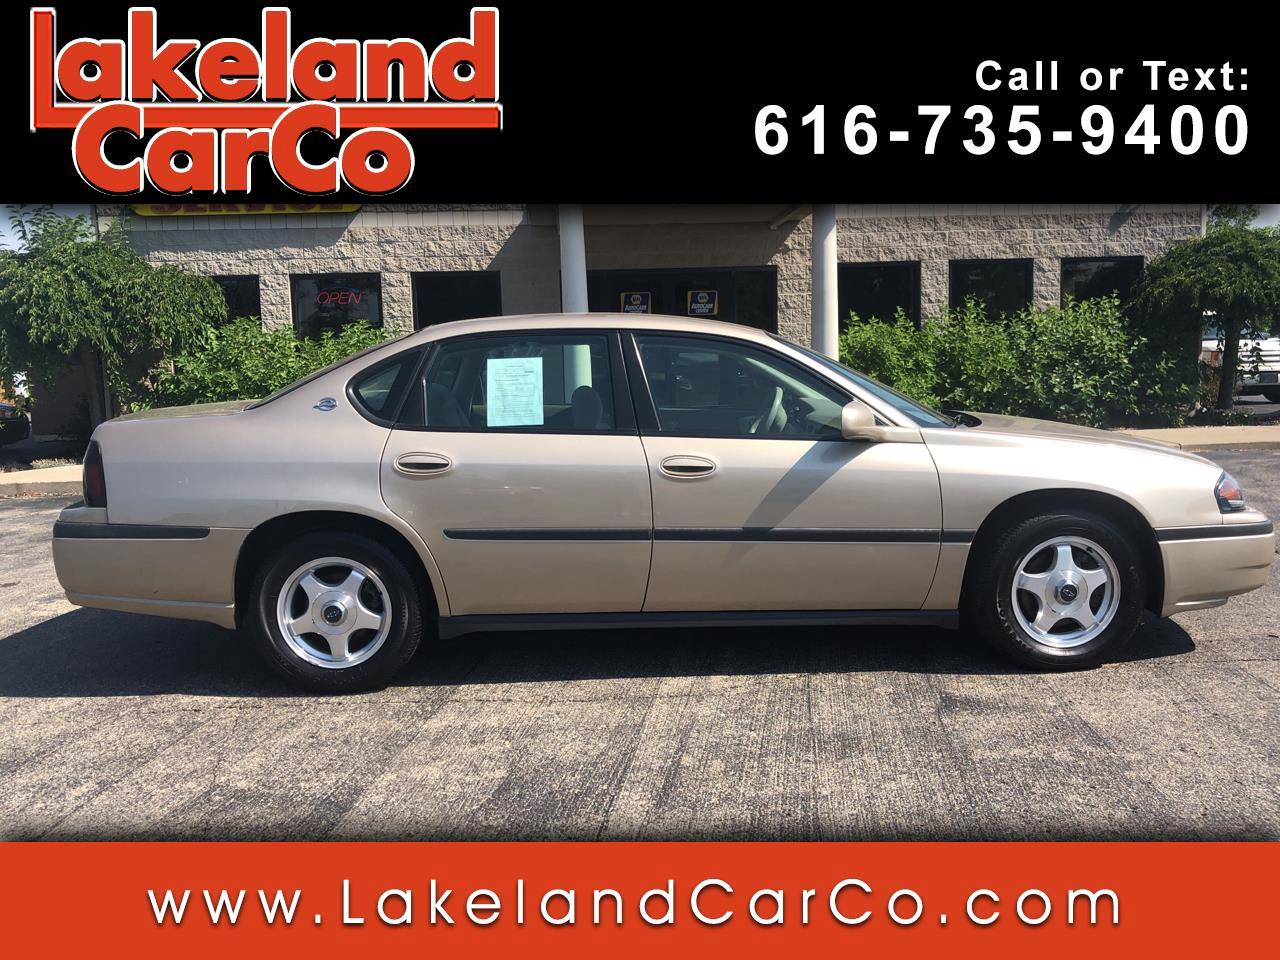 2005 Chevrolet Impala 4dr Sdn Unmarked Police Pkg 9C3